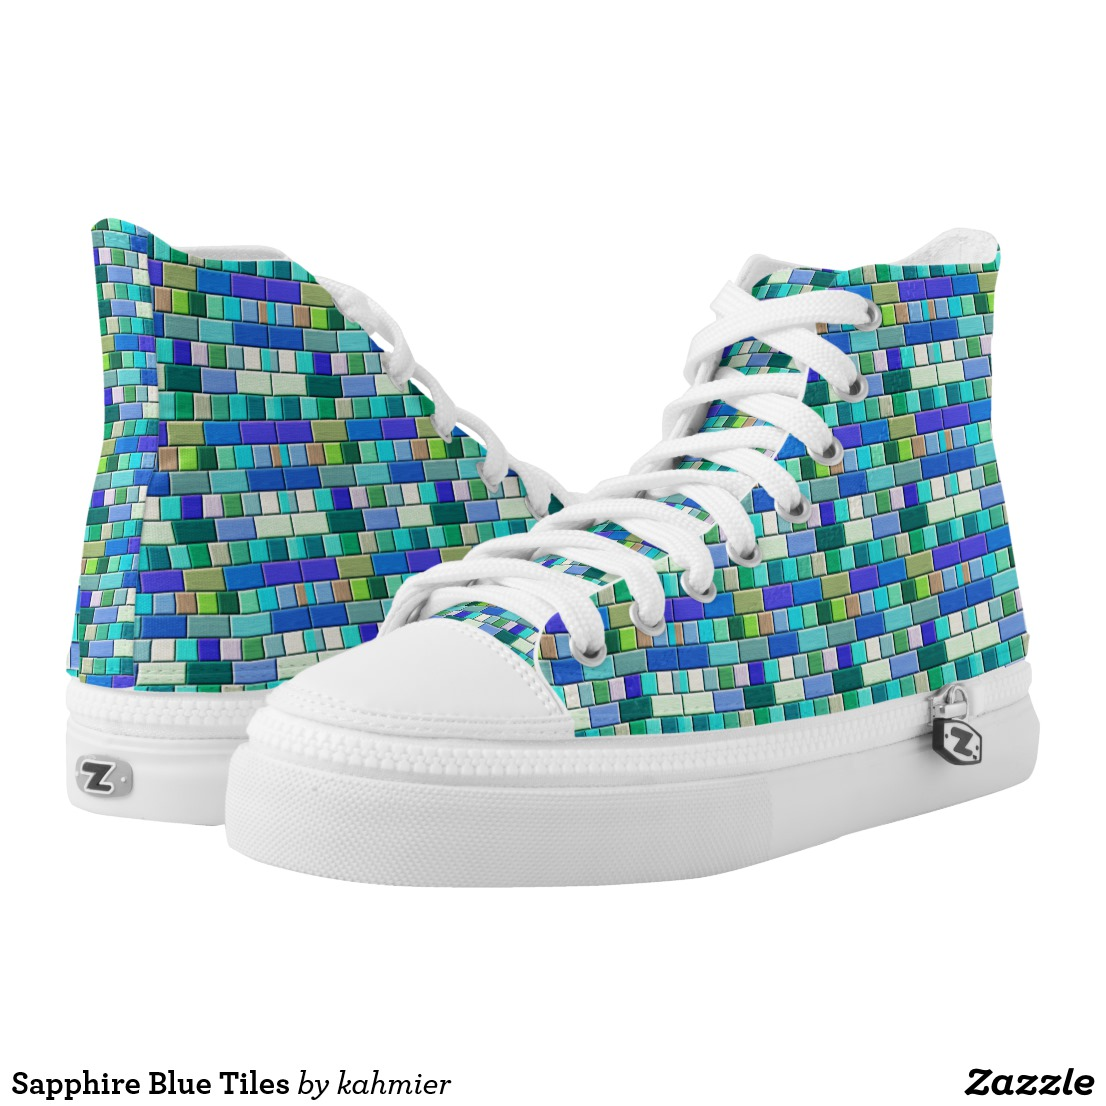 Sapphire Blue Tiles High-Top Sneakers